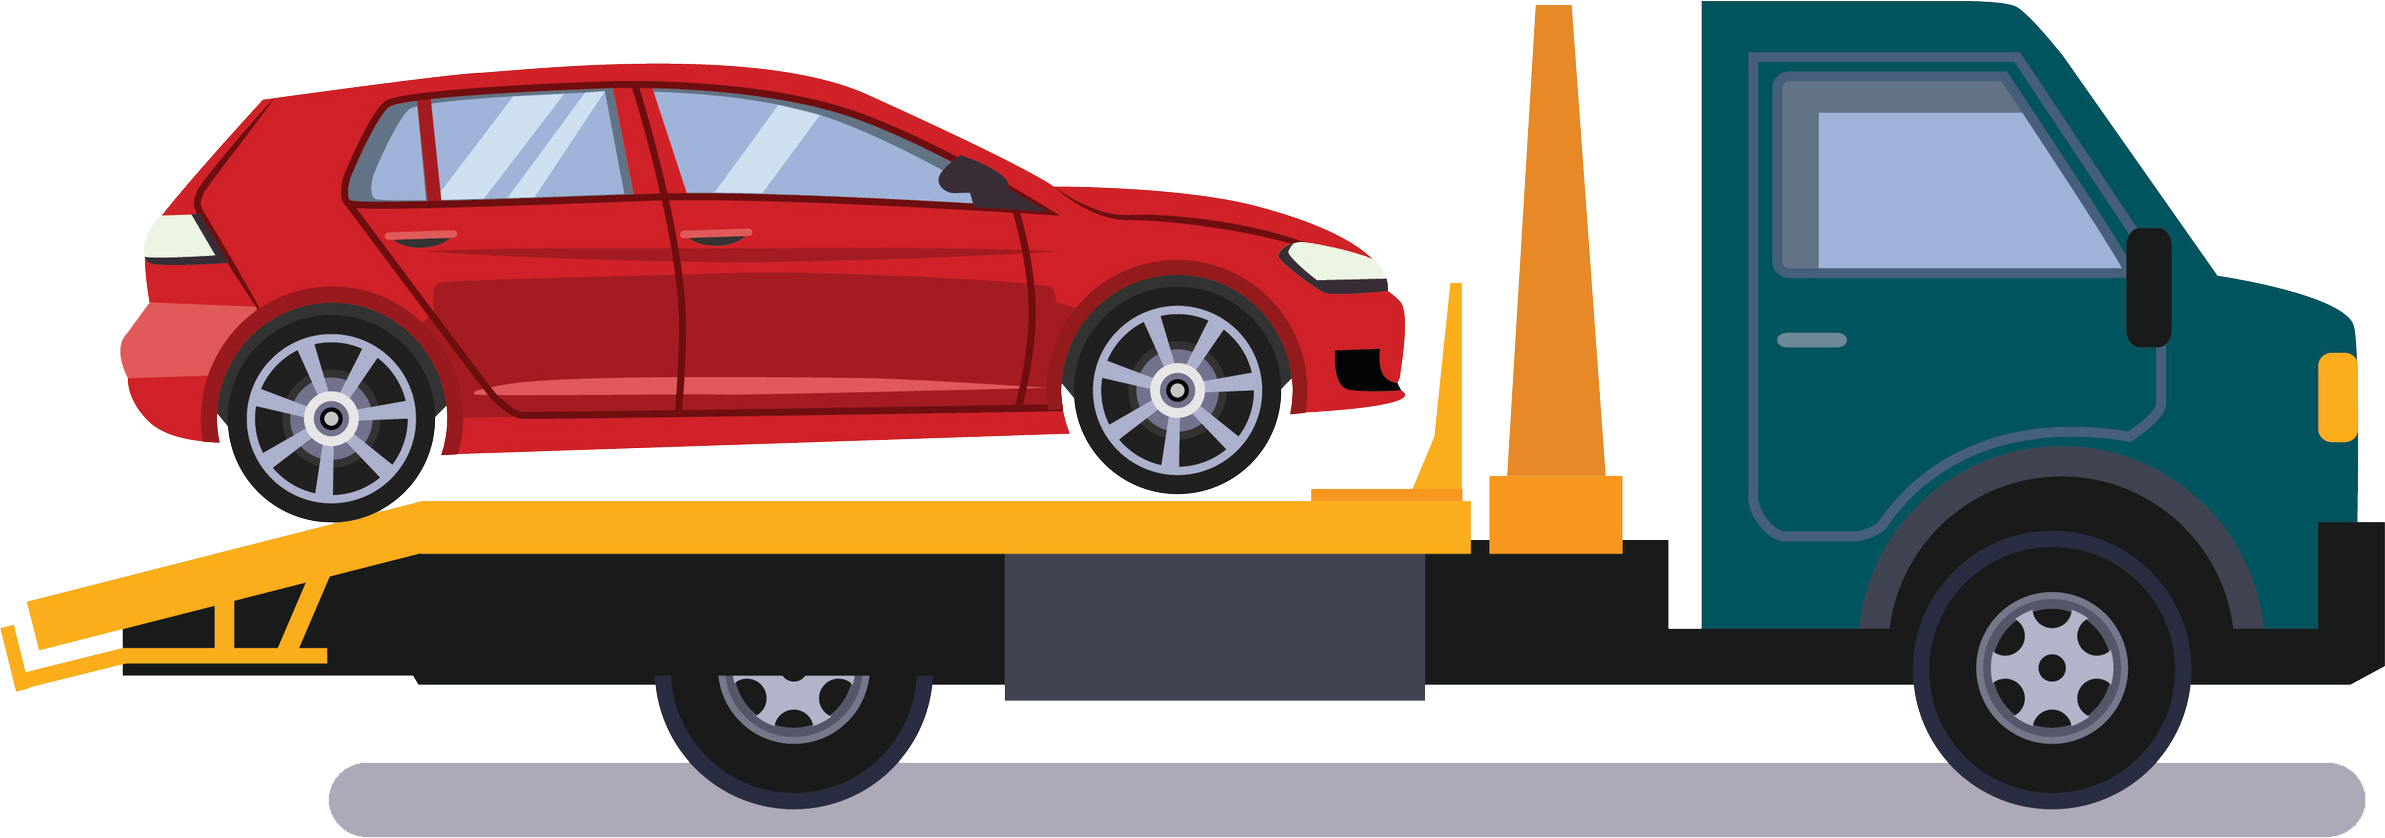 Car towing clipart clipart images gallery for free download.